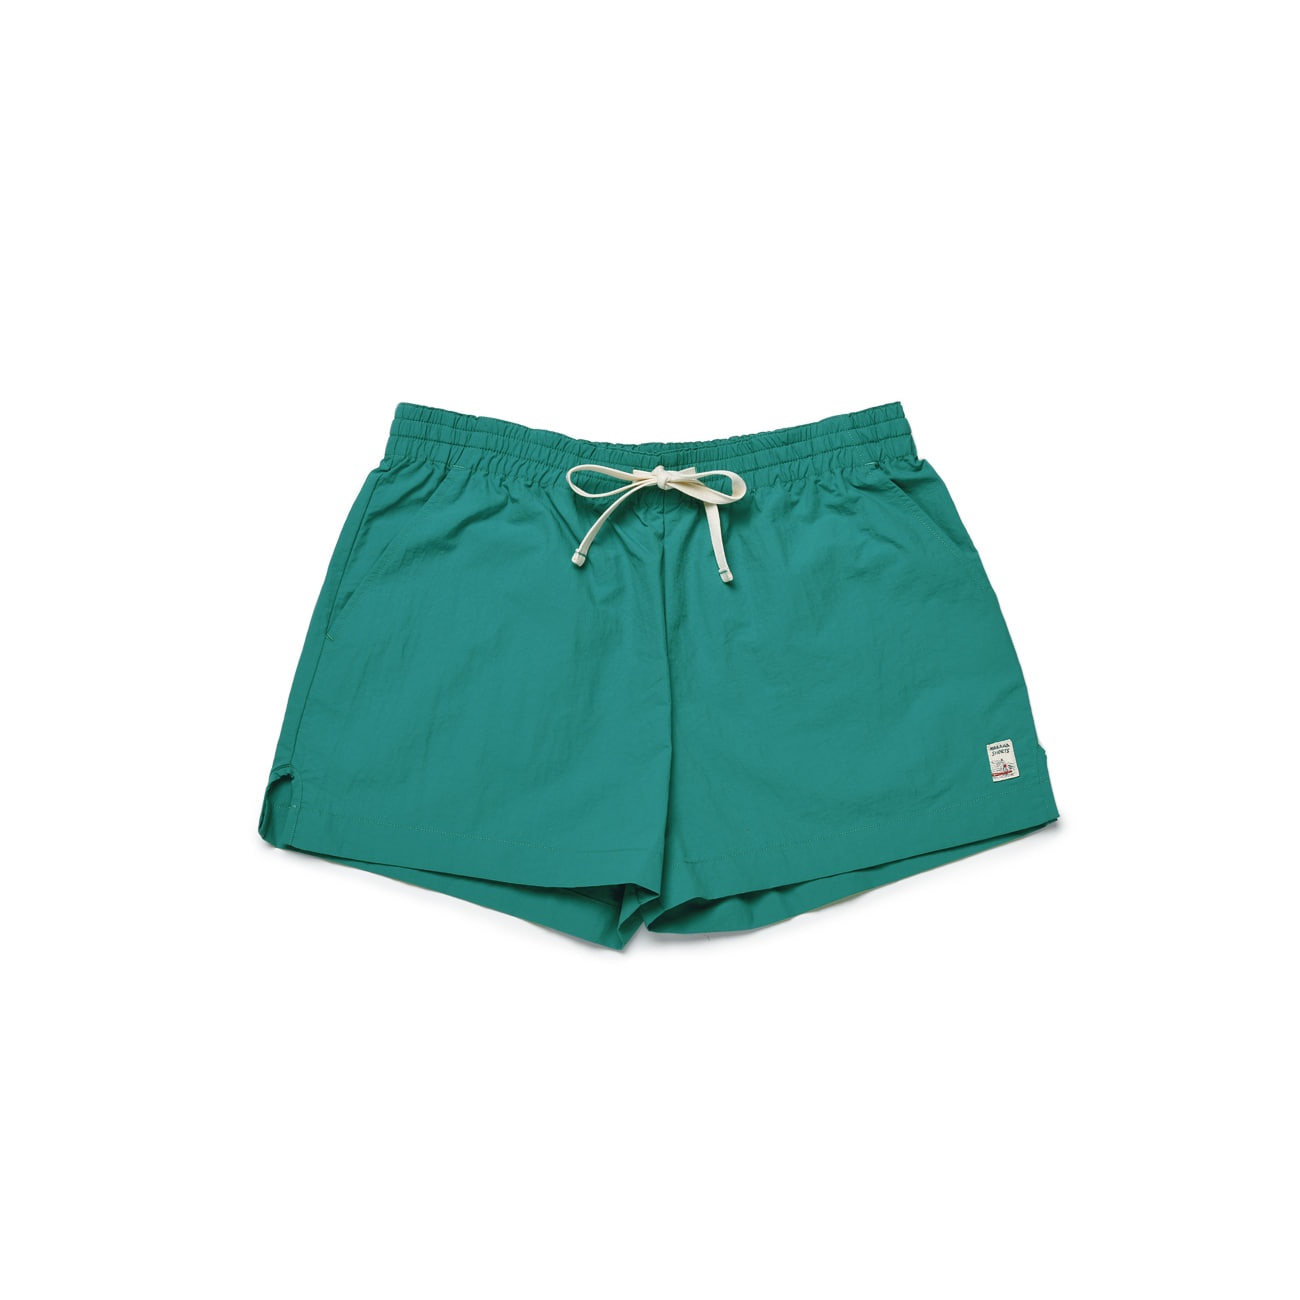 [For Women] M.Nii Basic Shorts